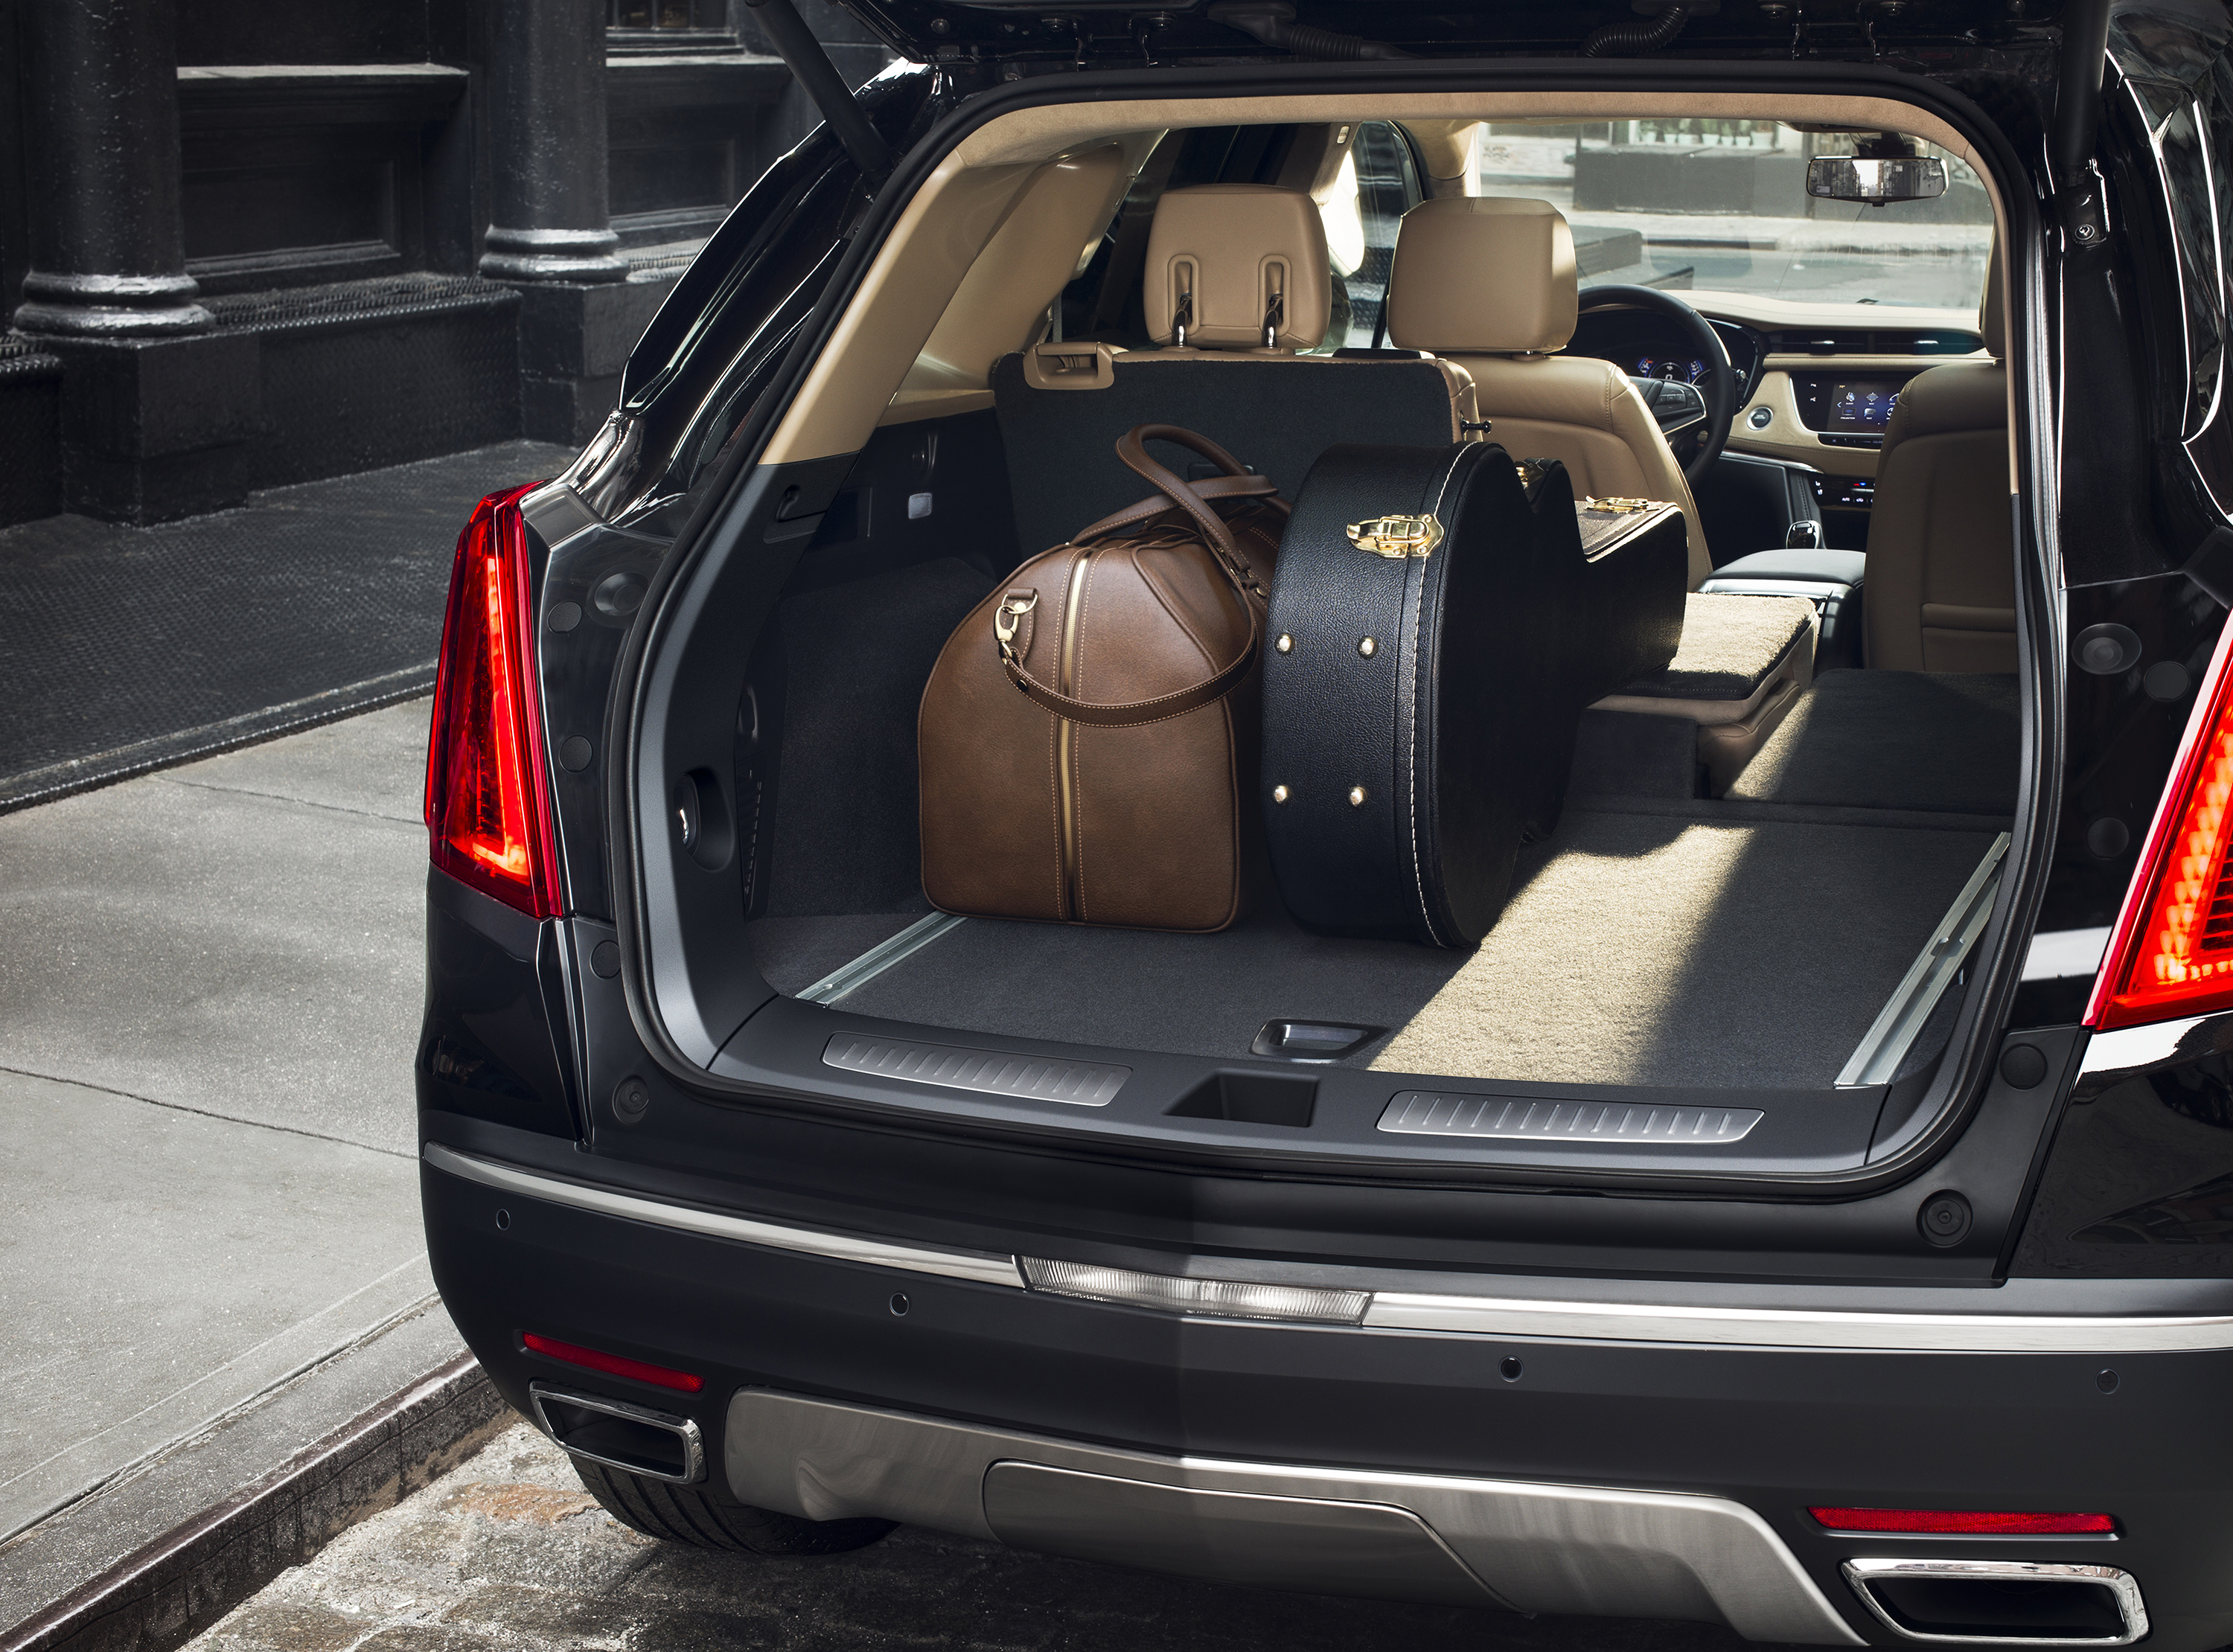 catalog crossover cadillac sale all online for vroom used srx years srxs delivery buy home